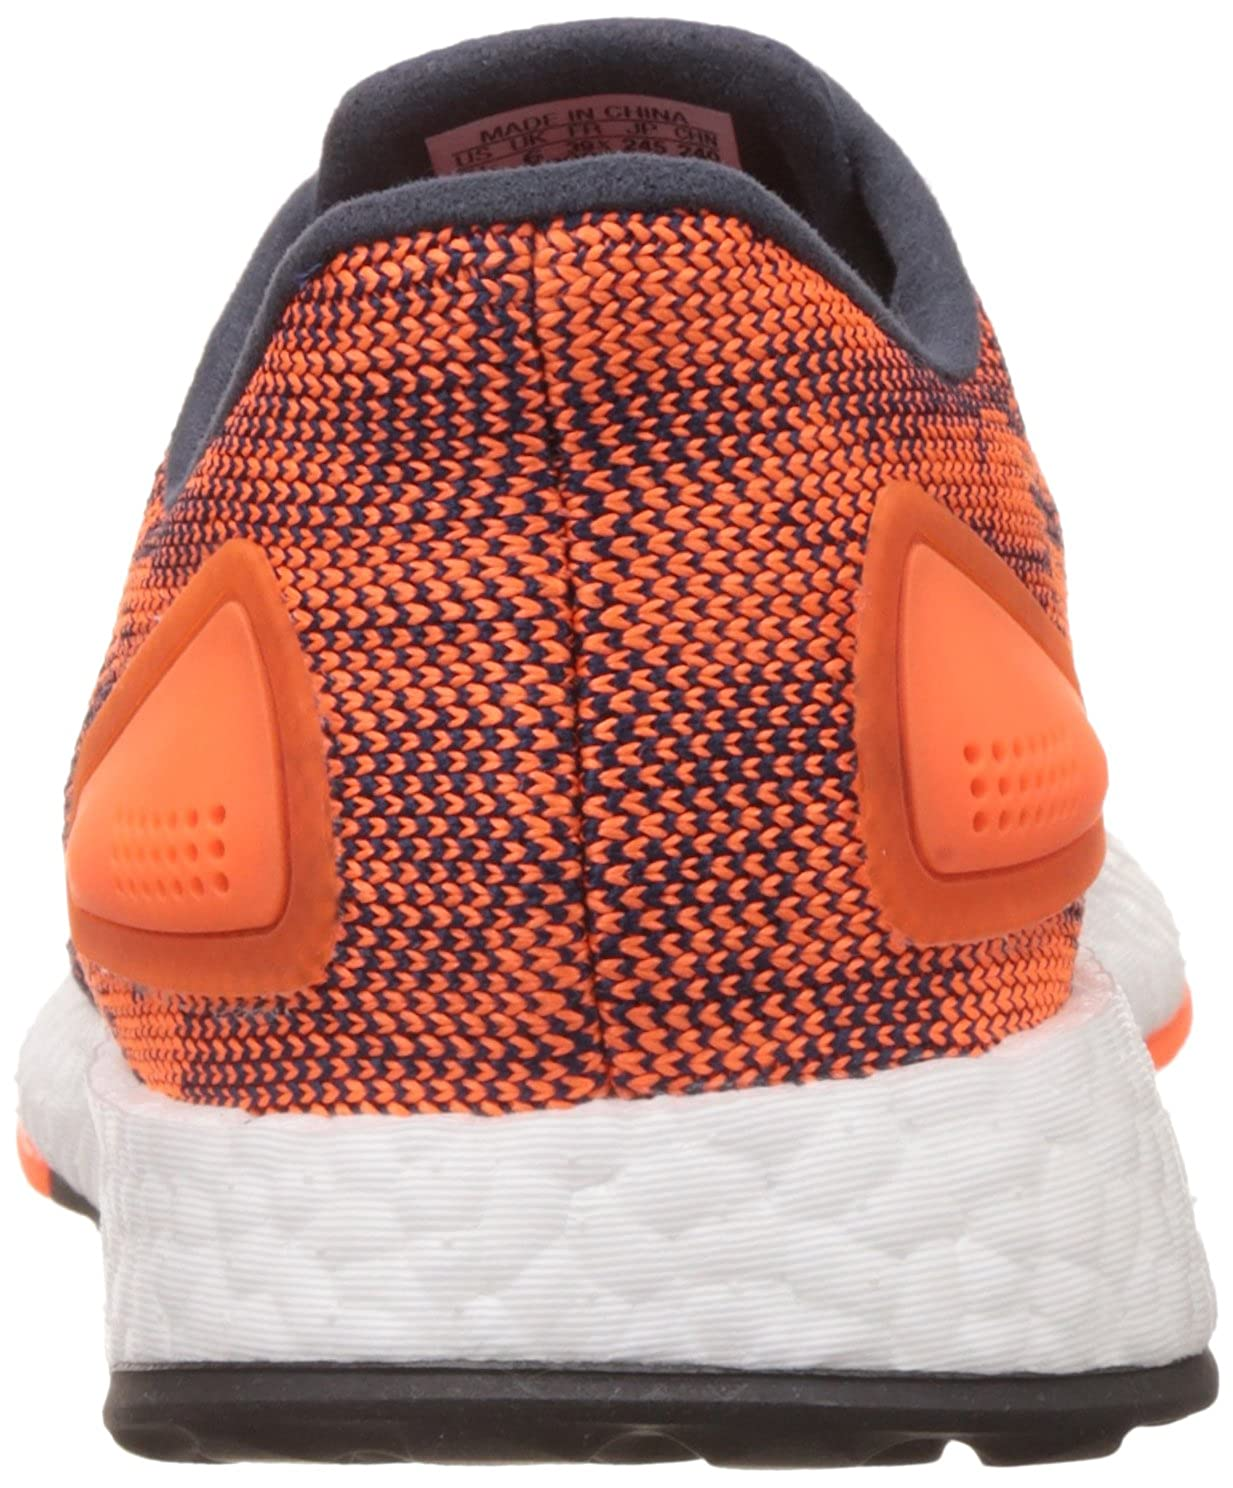 9e5f42722 Adidas Men s Pureboost DPR Running Shoes  Buy Online at Low Prices in India  - Amazon.in